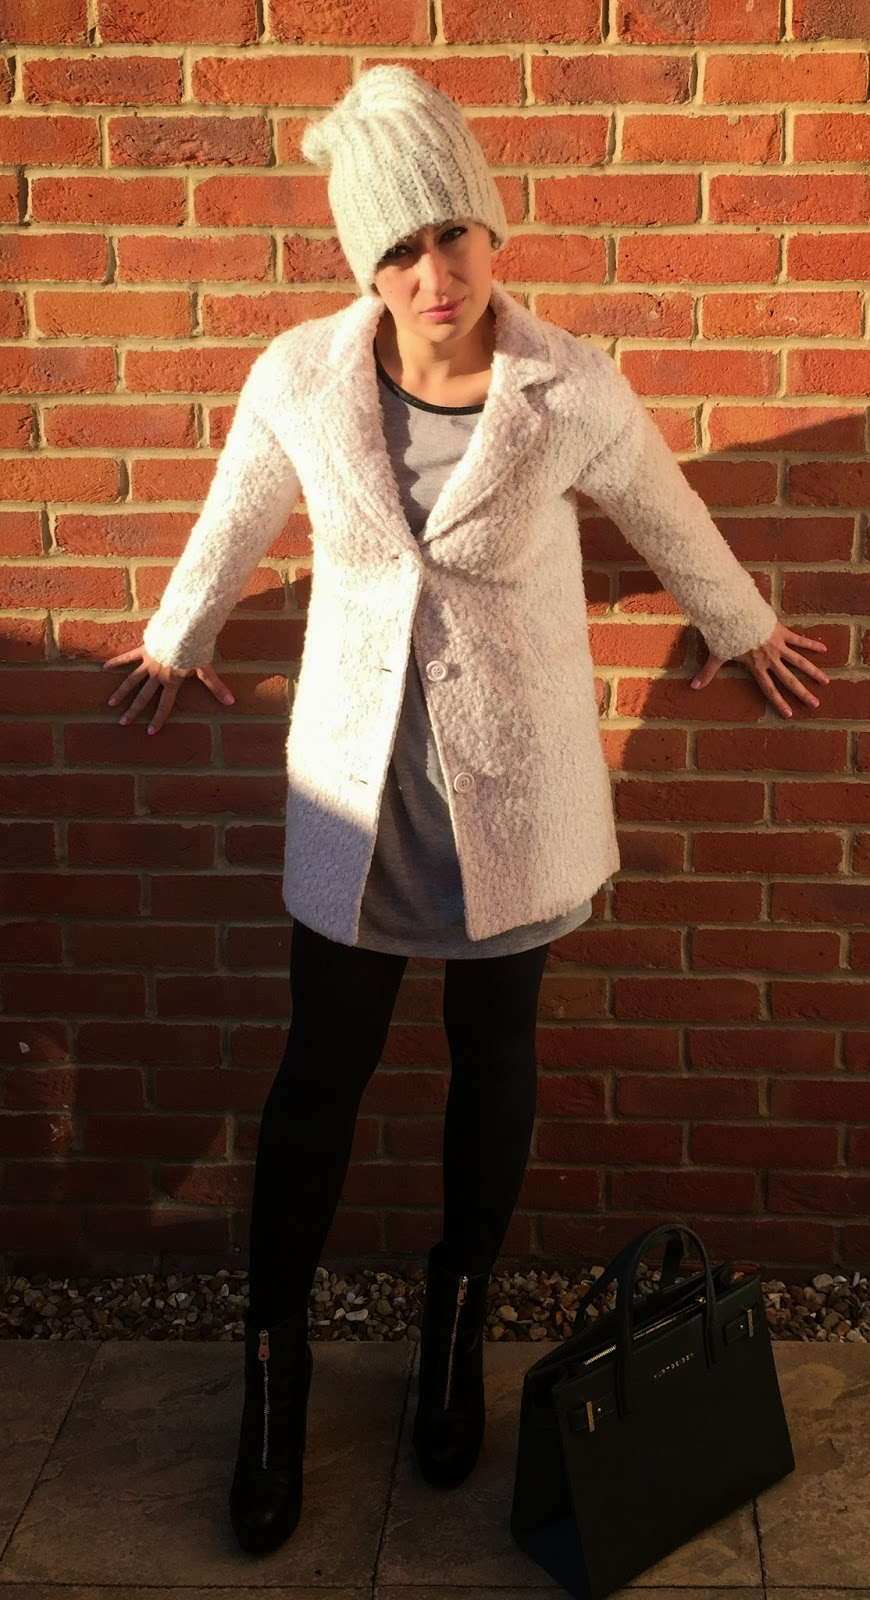 H&M Pale Pink Boucle coat with blacks and greys